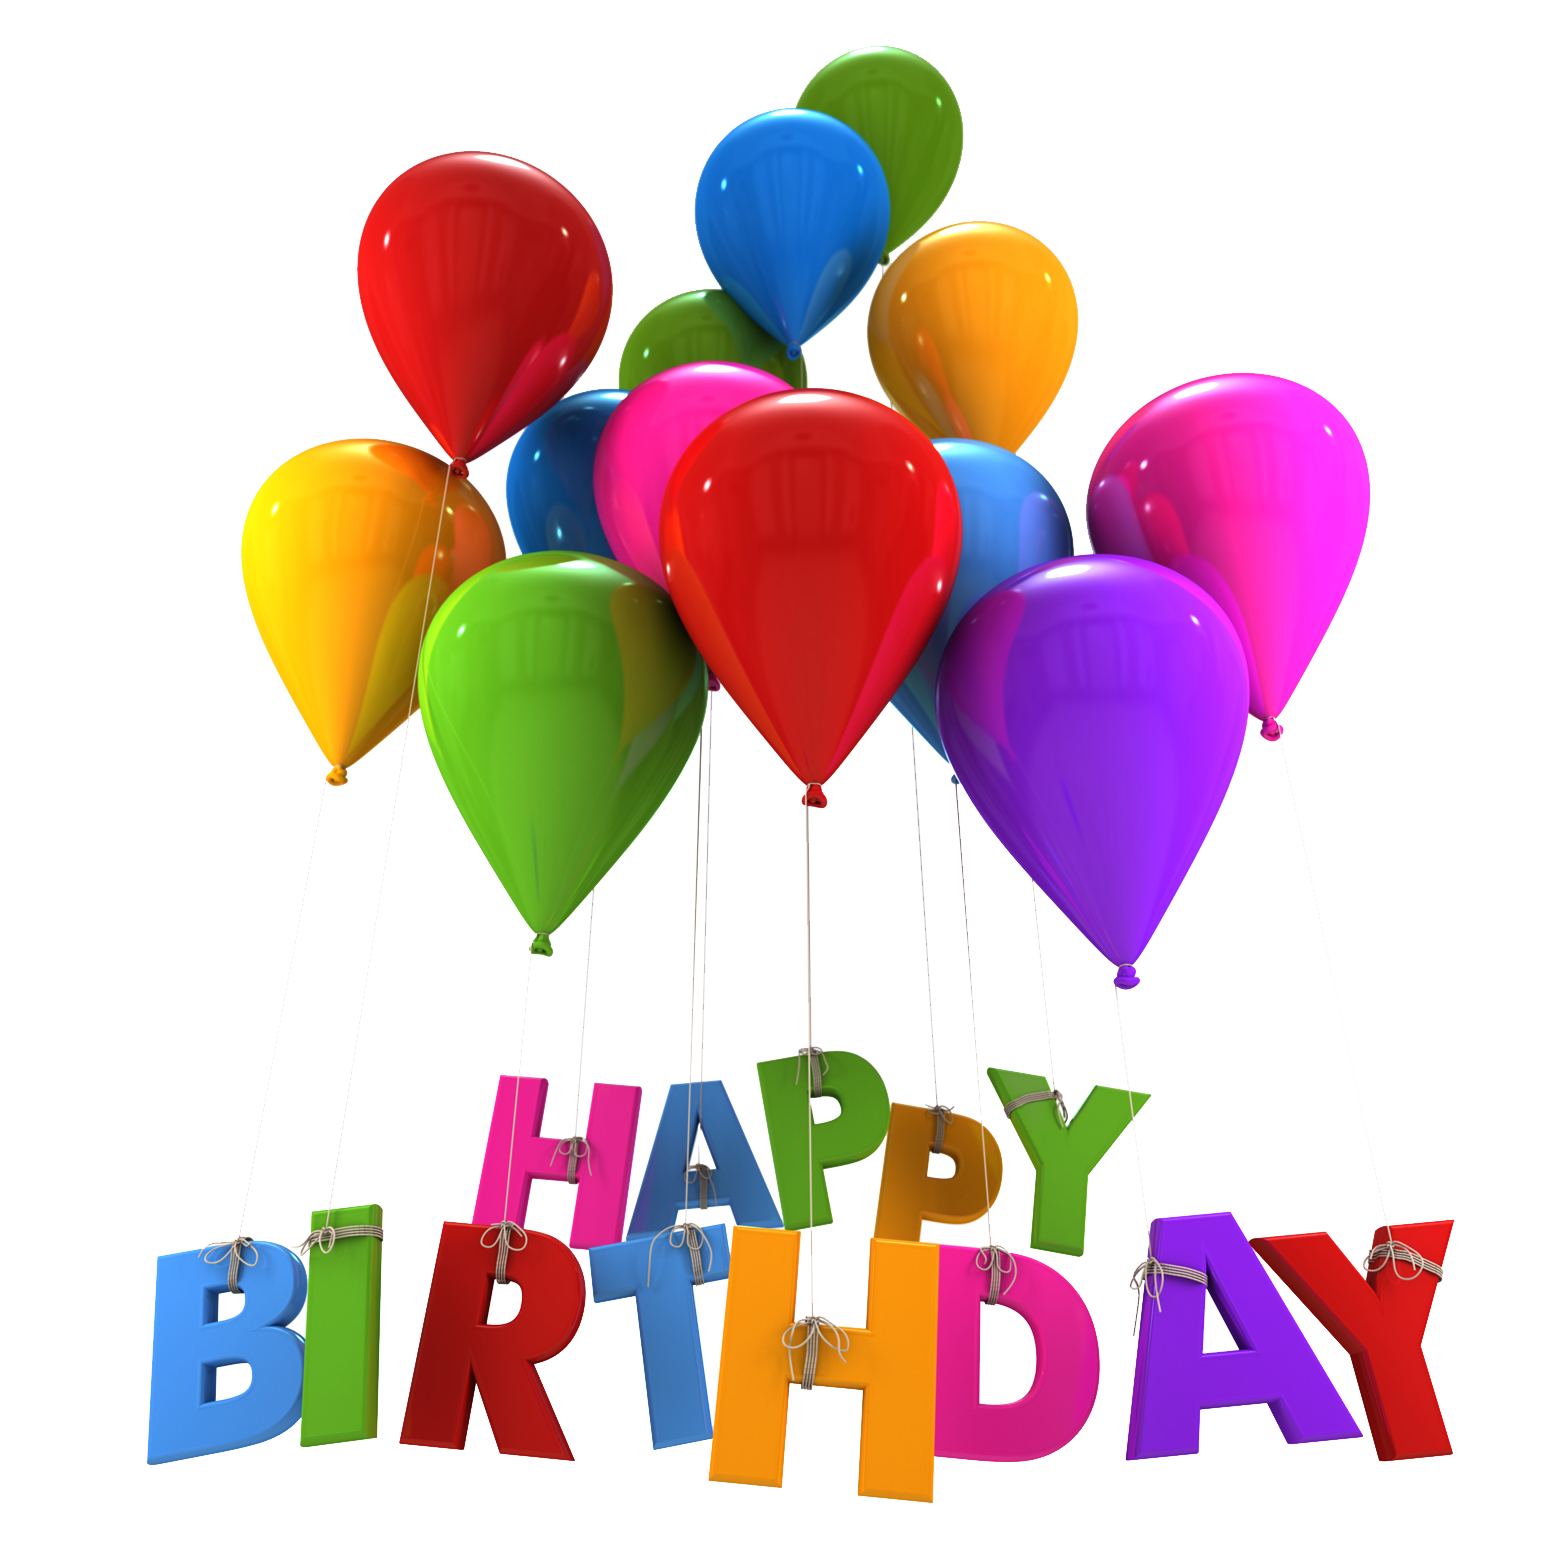 Free download. Happy birthday png images